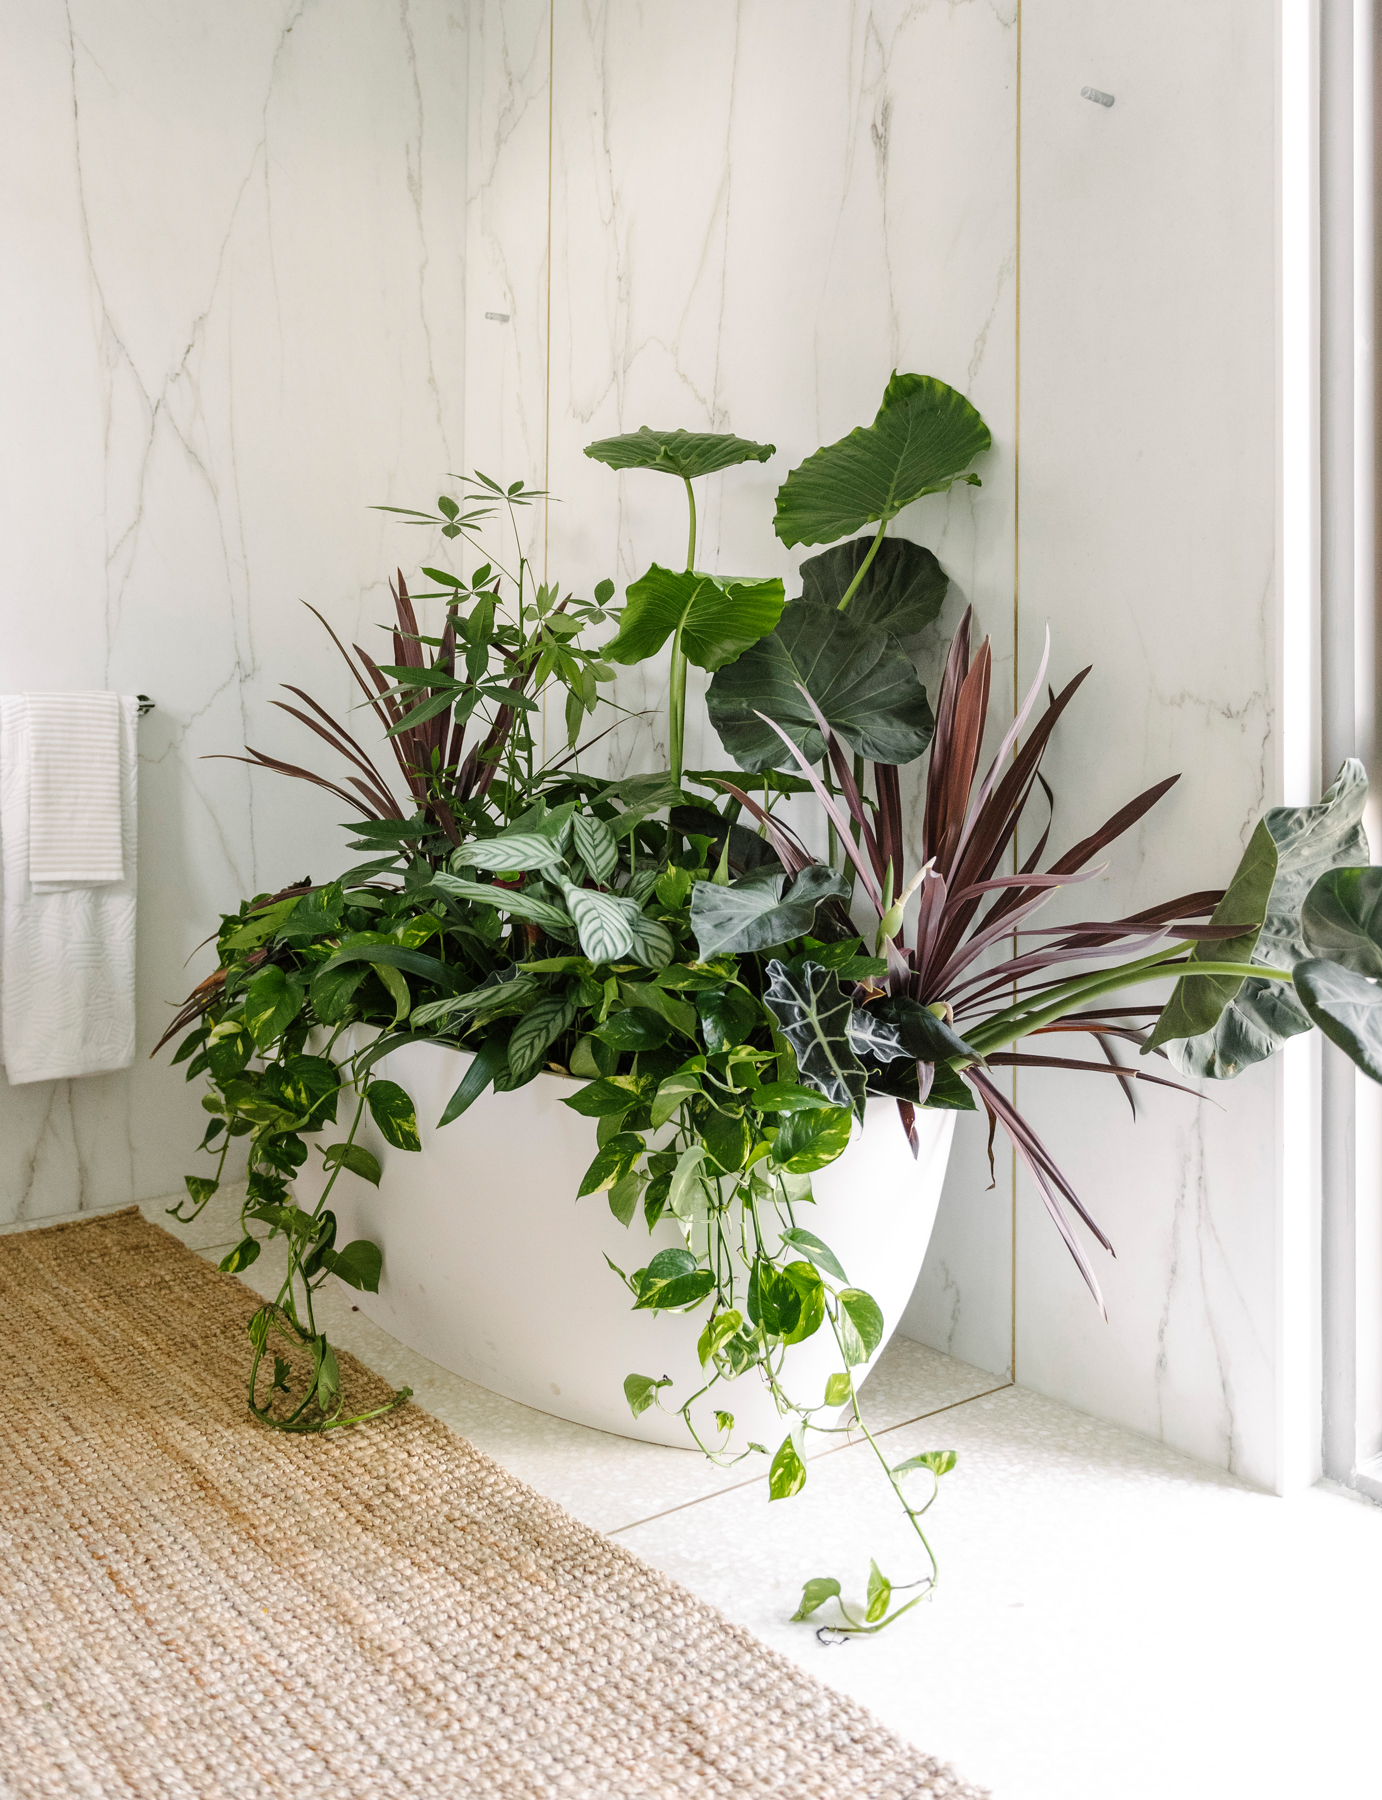 Where to store plants in winter - bathtub from West Elm Holiday House